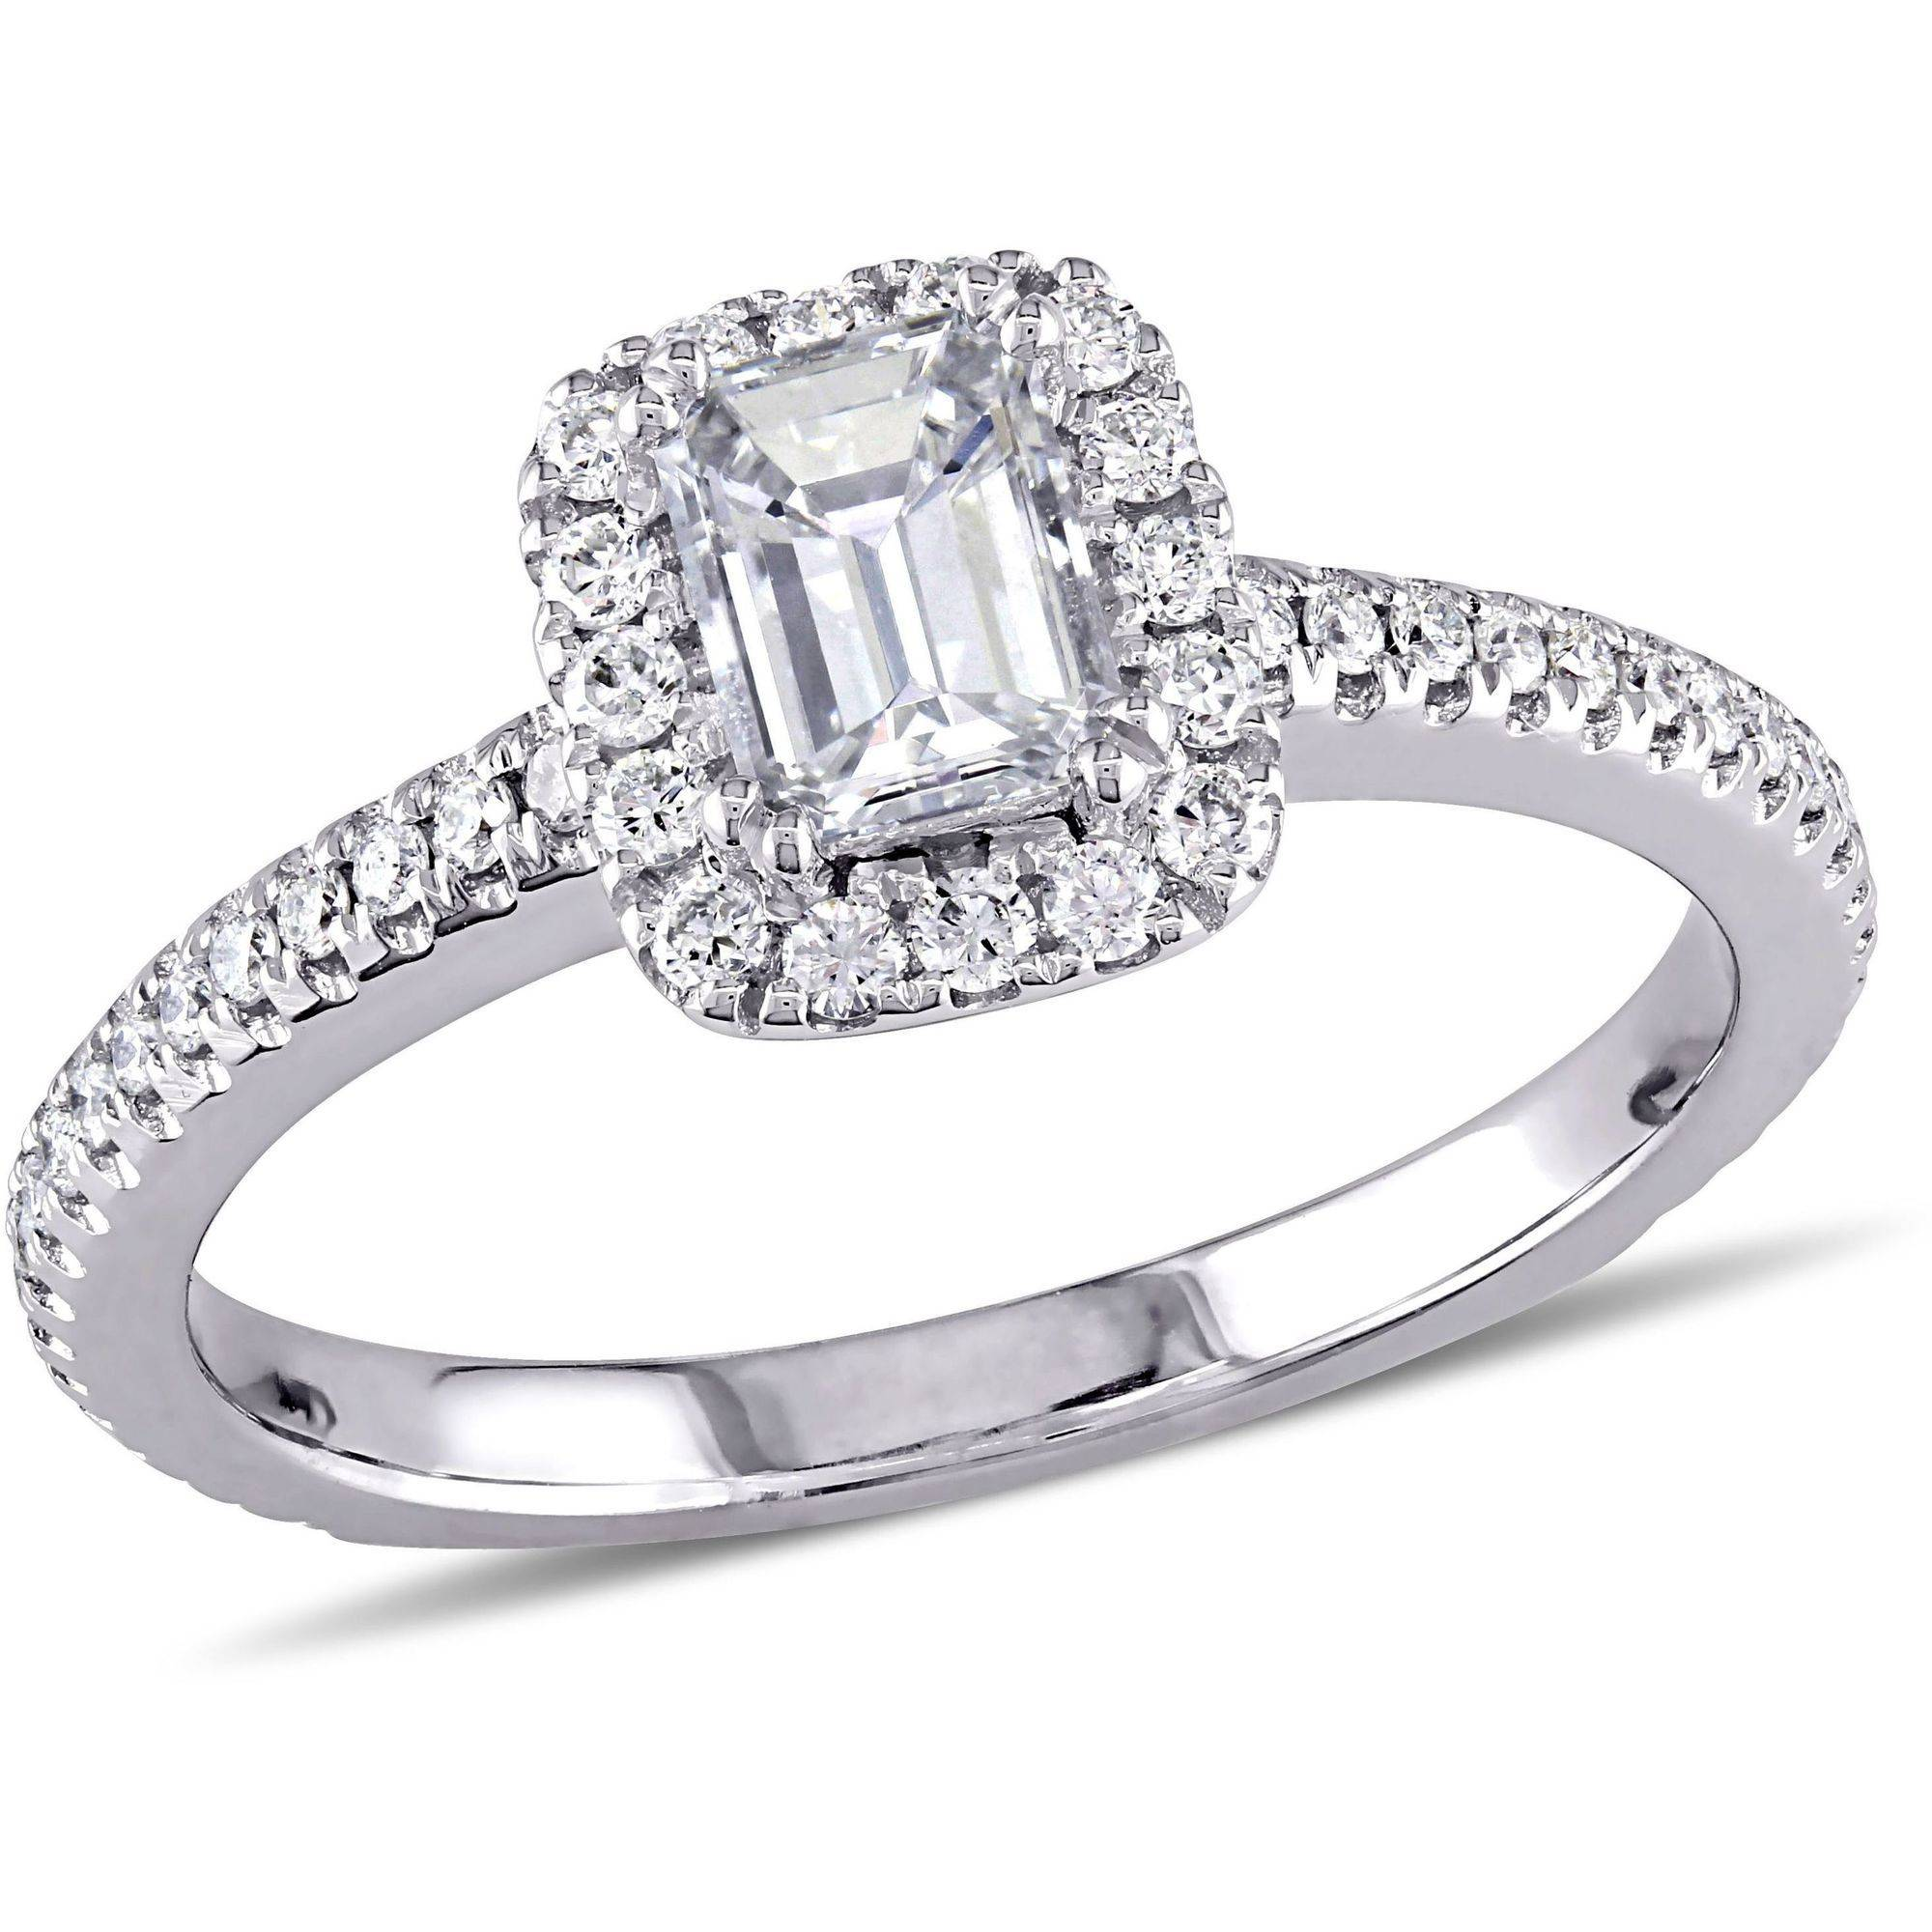 Miabella 7/8 Carat T.W. Emerald and Round-Cut Diamond 14kt White Gold Halo Engagement Ring